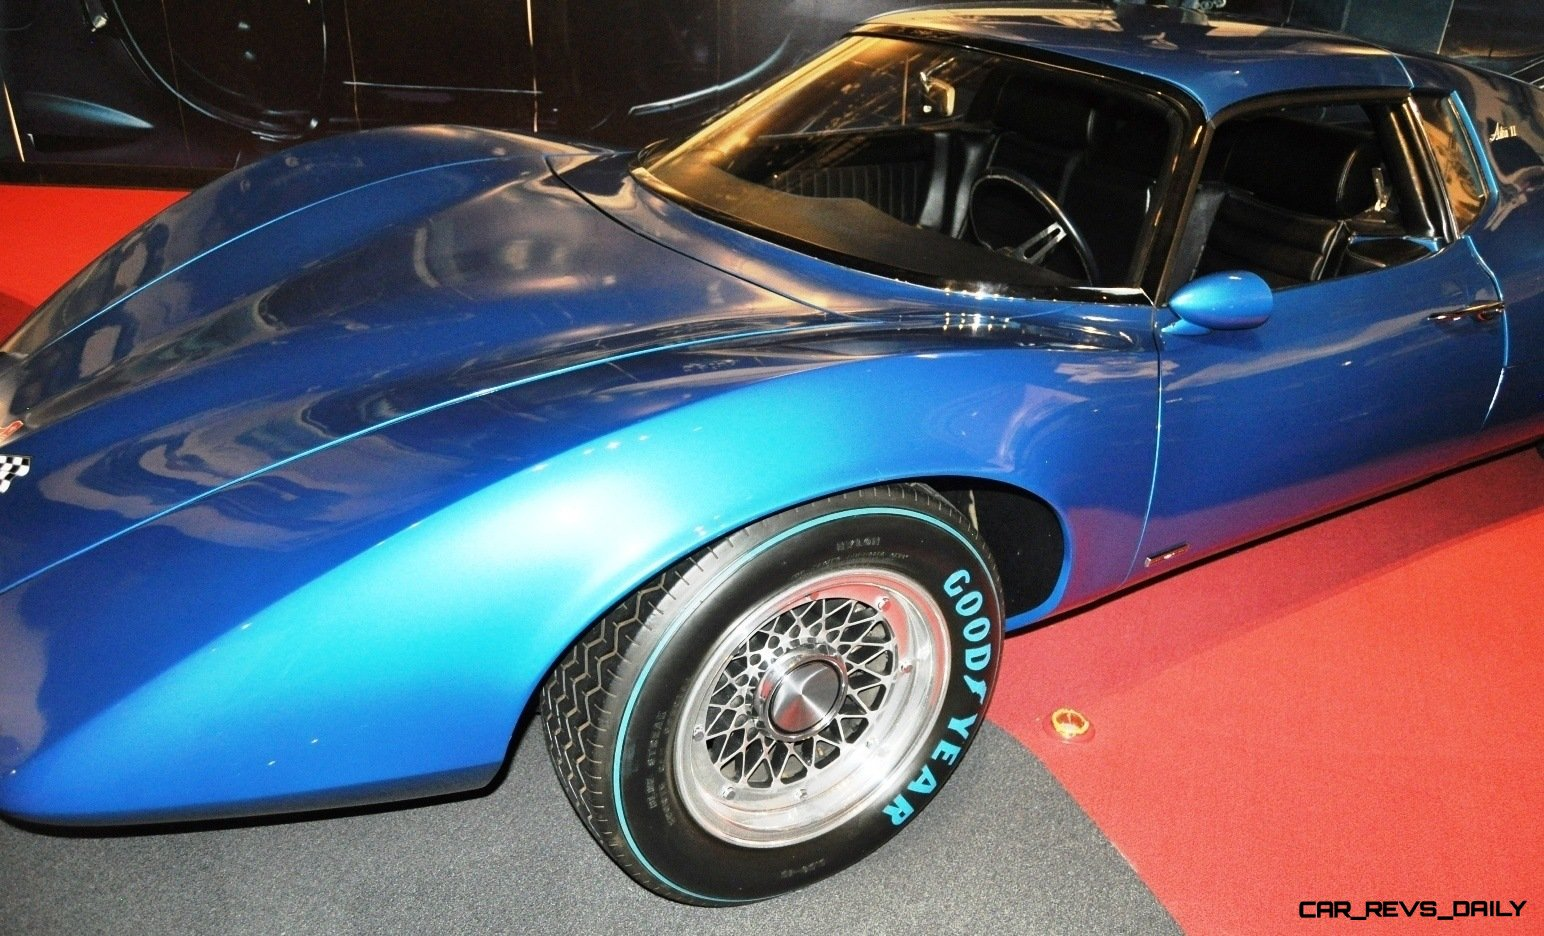 1968 Corvette ASTRO and ASTRO II Concepts at the National Corvette Museum + Ferrari and Bugatti-style Concepts 16